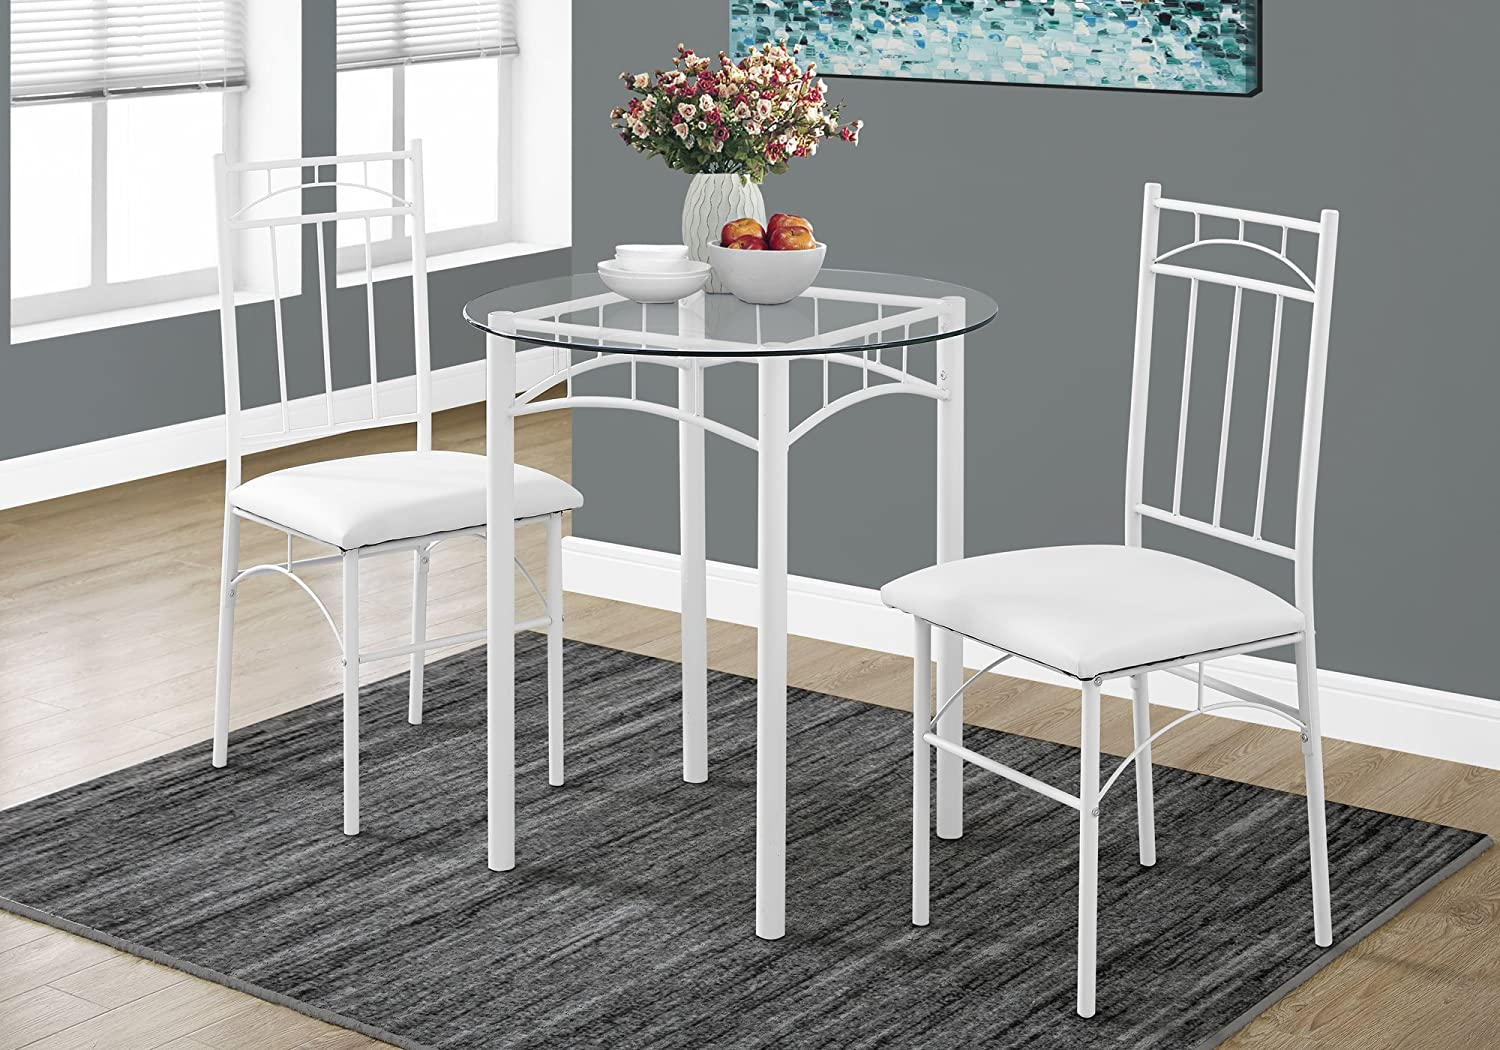 Monarch Specialties I 1001 Dining Set-3Pcs White Metal Tempered Glass